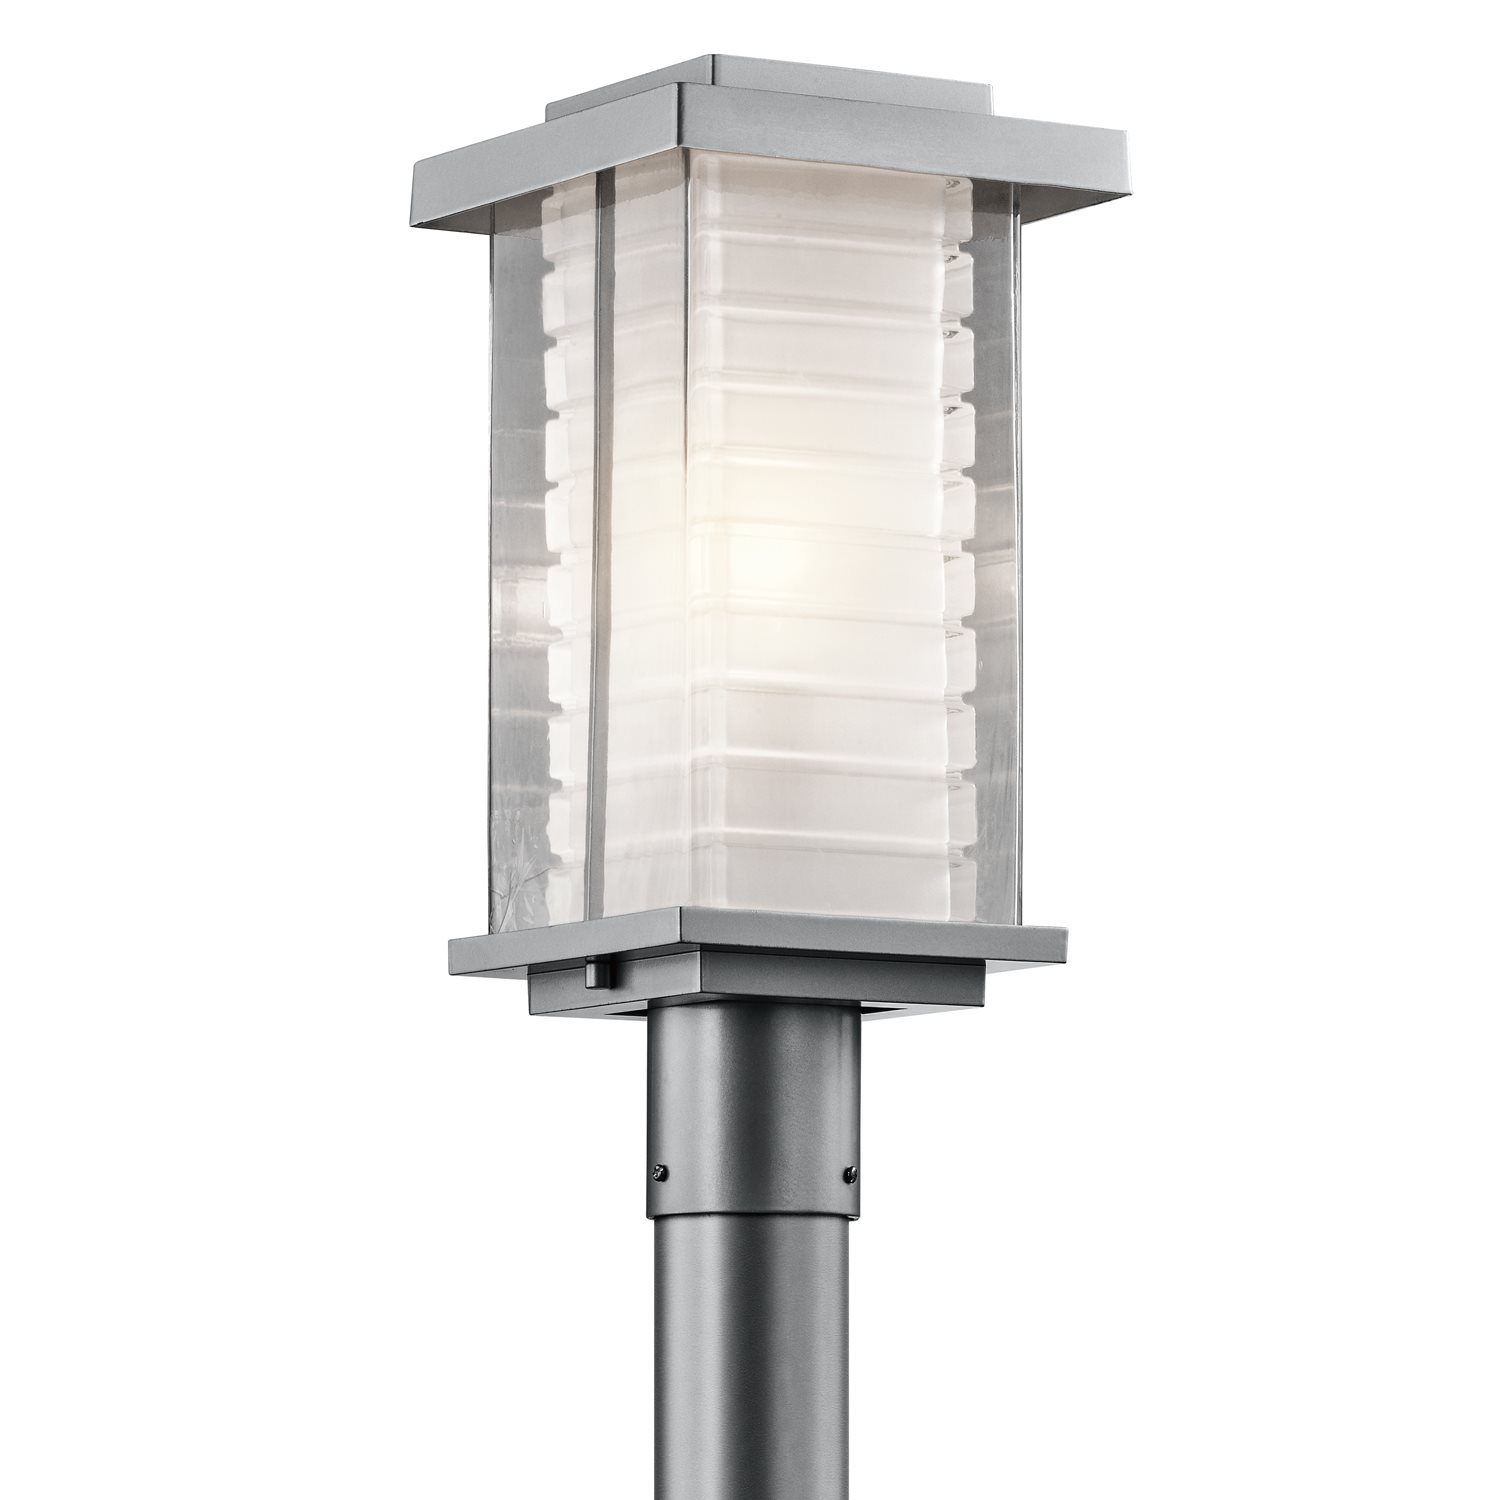 Kichler Lighting Ascari Modern Contemporary Outdoor Post Lantern Ebay